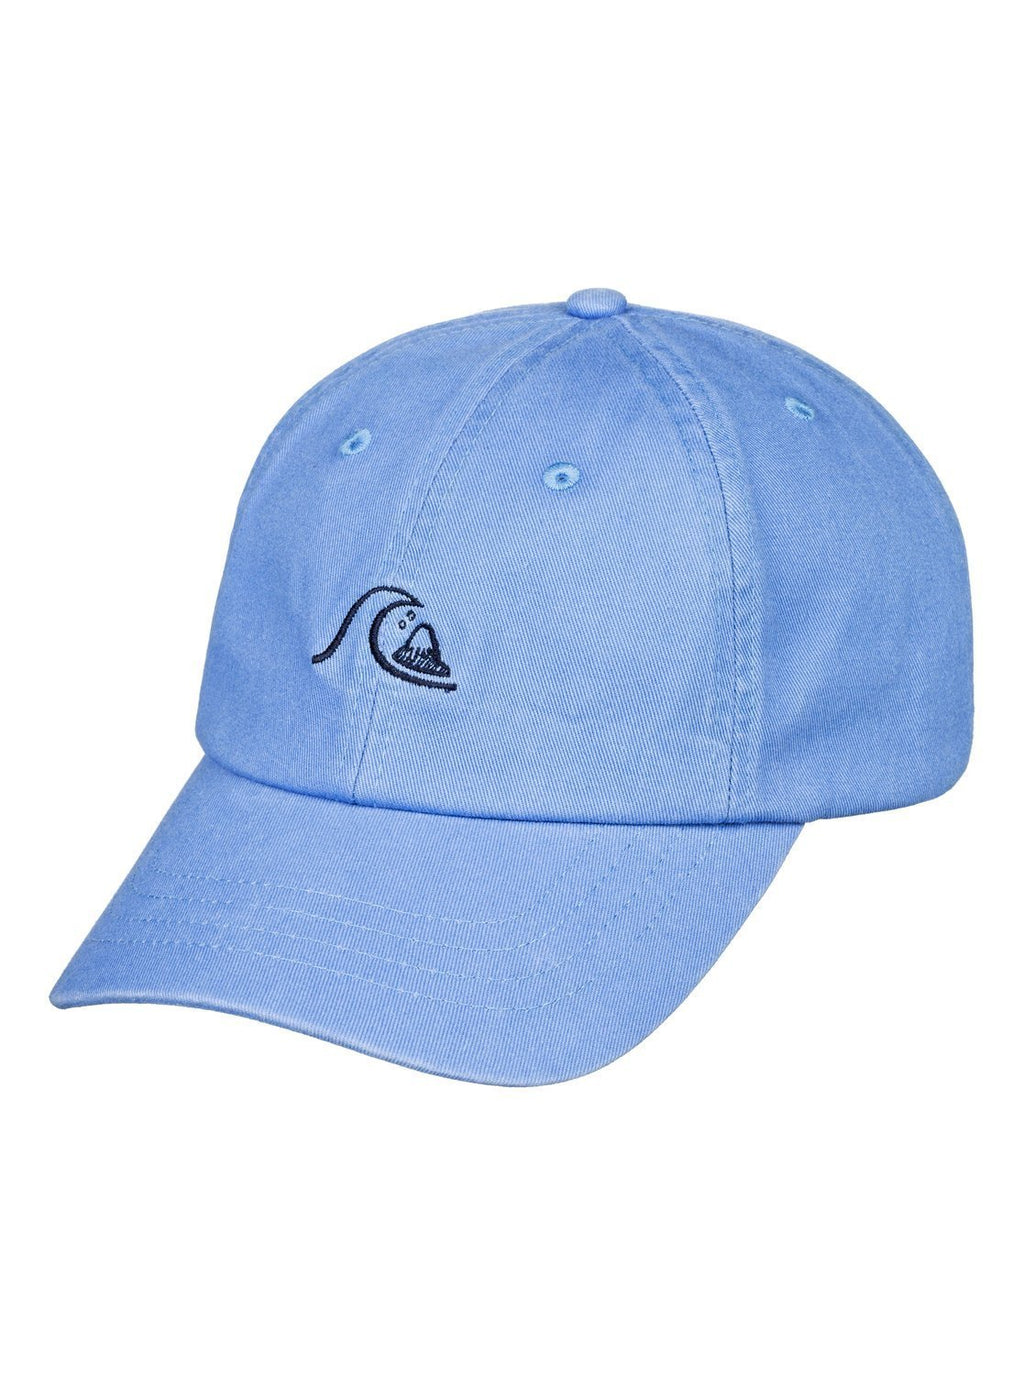 -Quiksilver- Headwear O/S / Blue Nights Z-Quiksilver - Rad Bad Dad